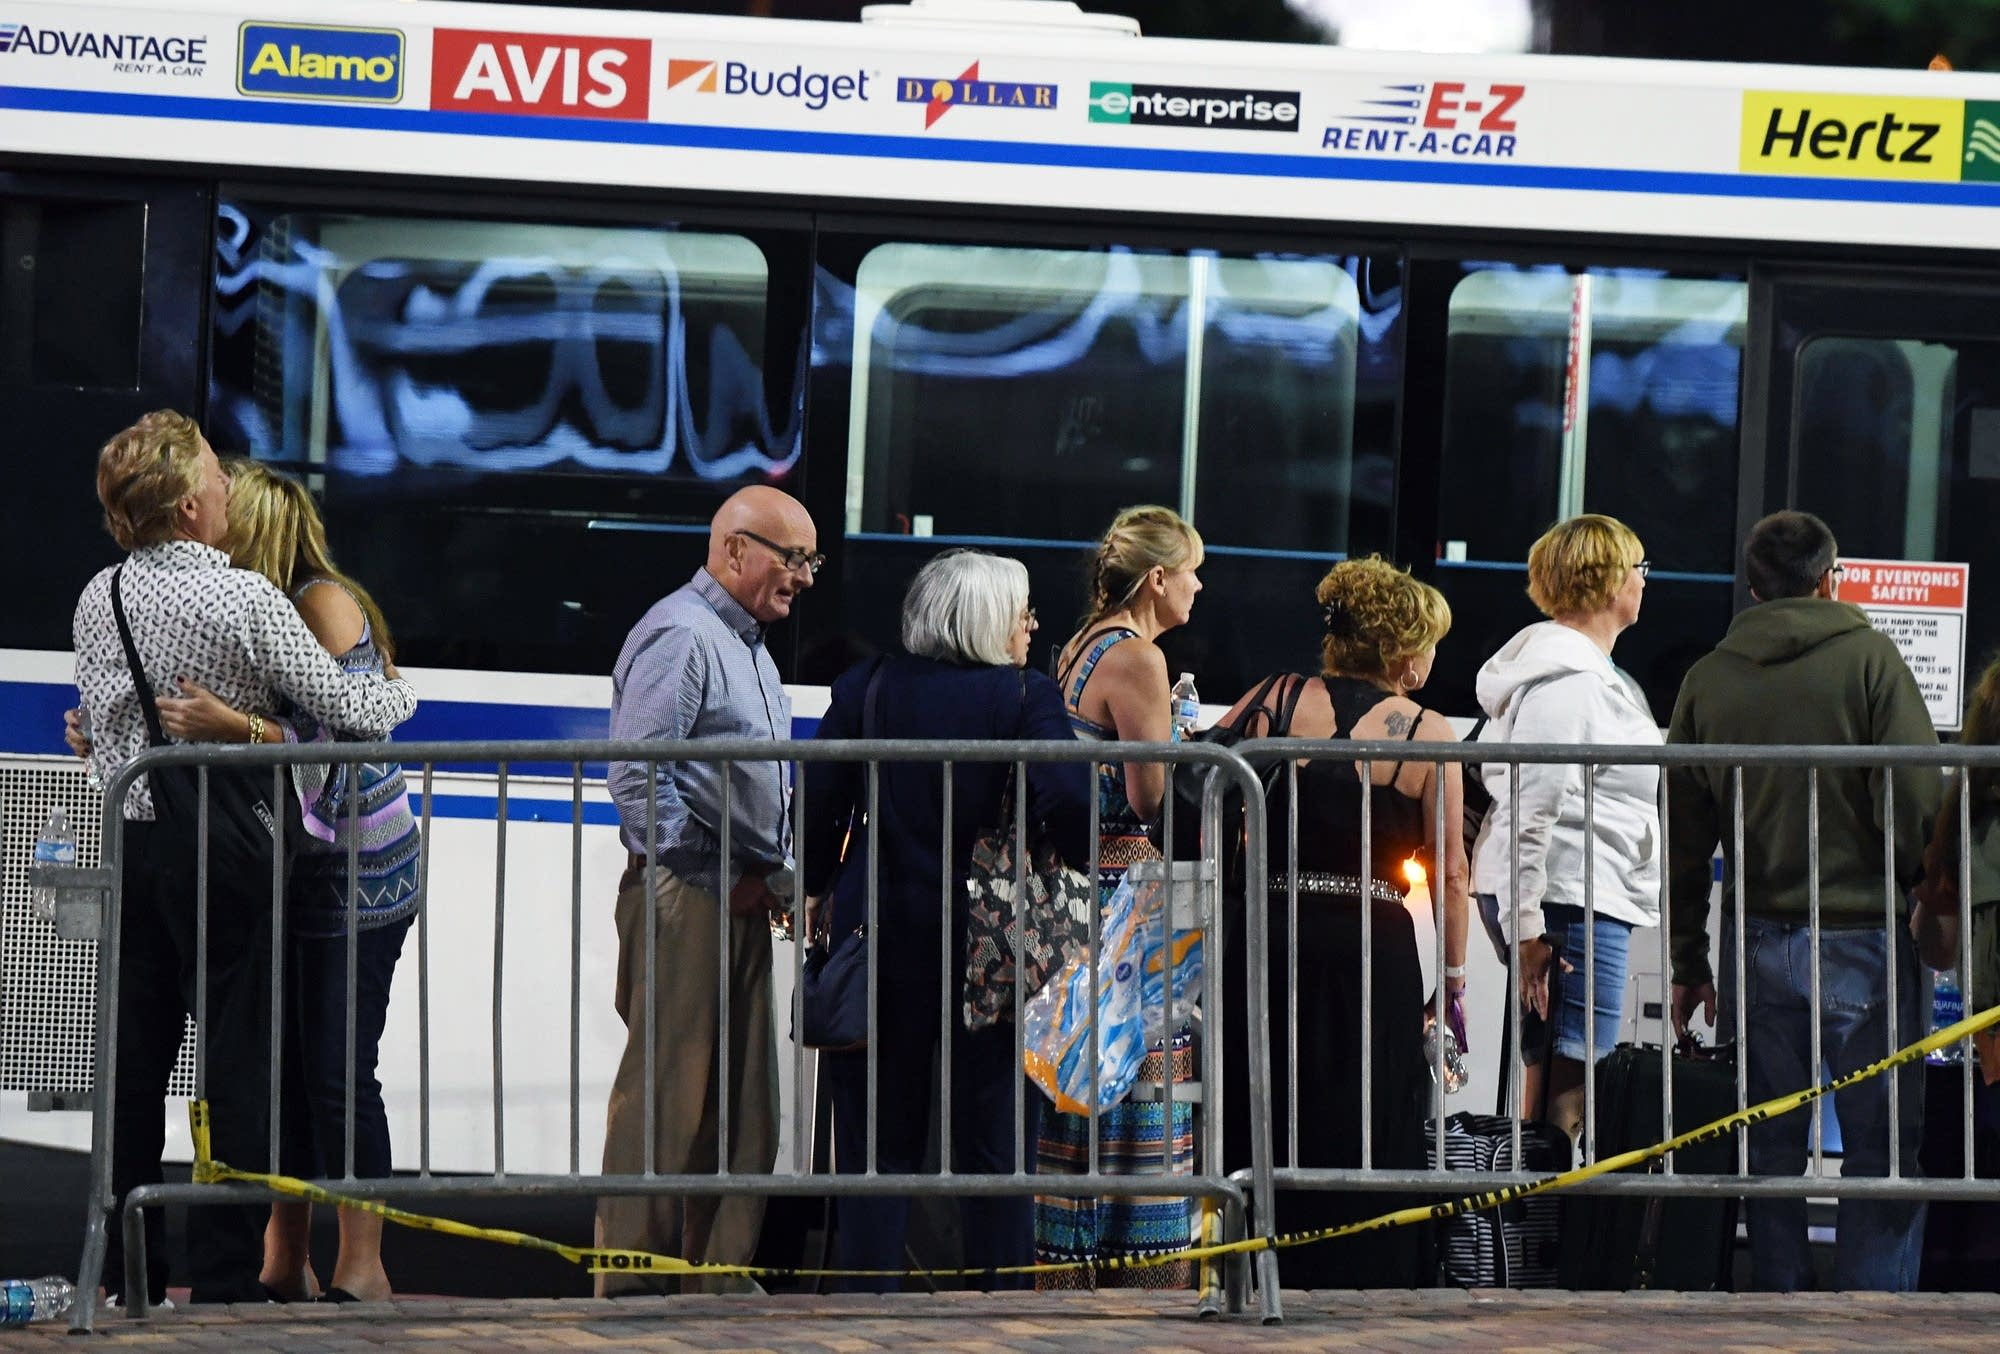 People wait to get on a bus outside the Thomas & Mack Center.